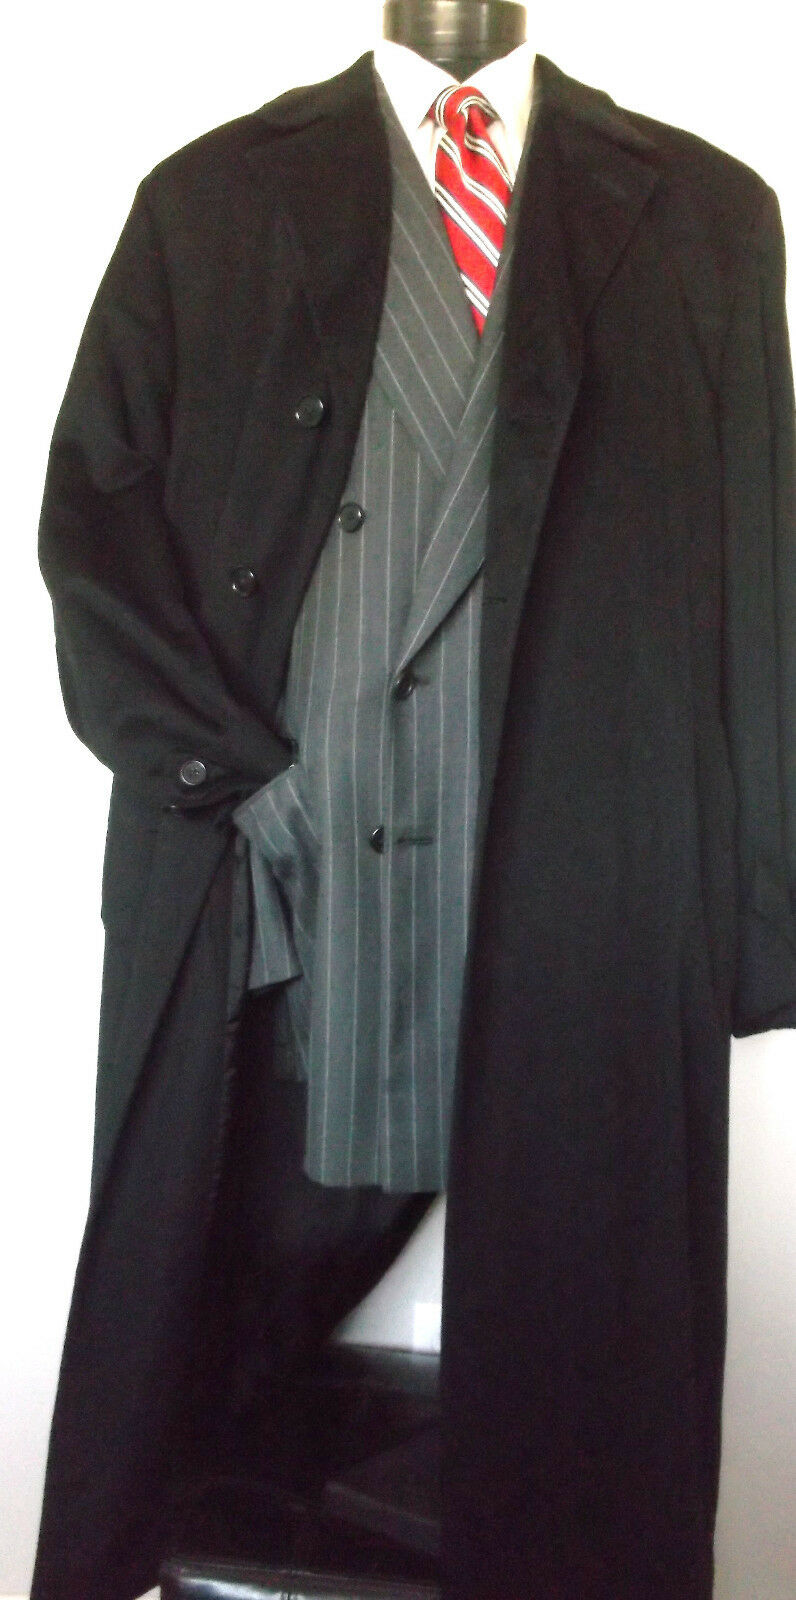 Neiman Marcus Loro Piana Storm System CashmereTop Overcoat Single Breasted  46L